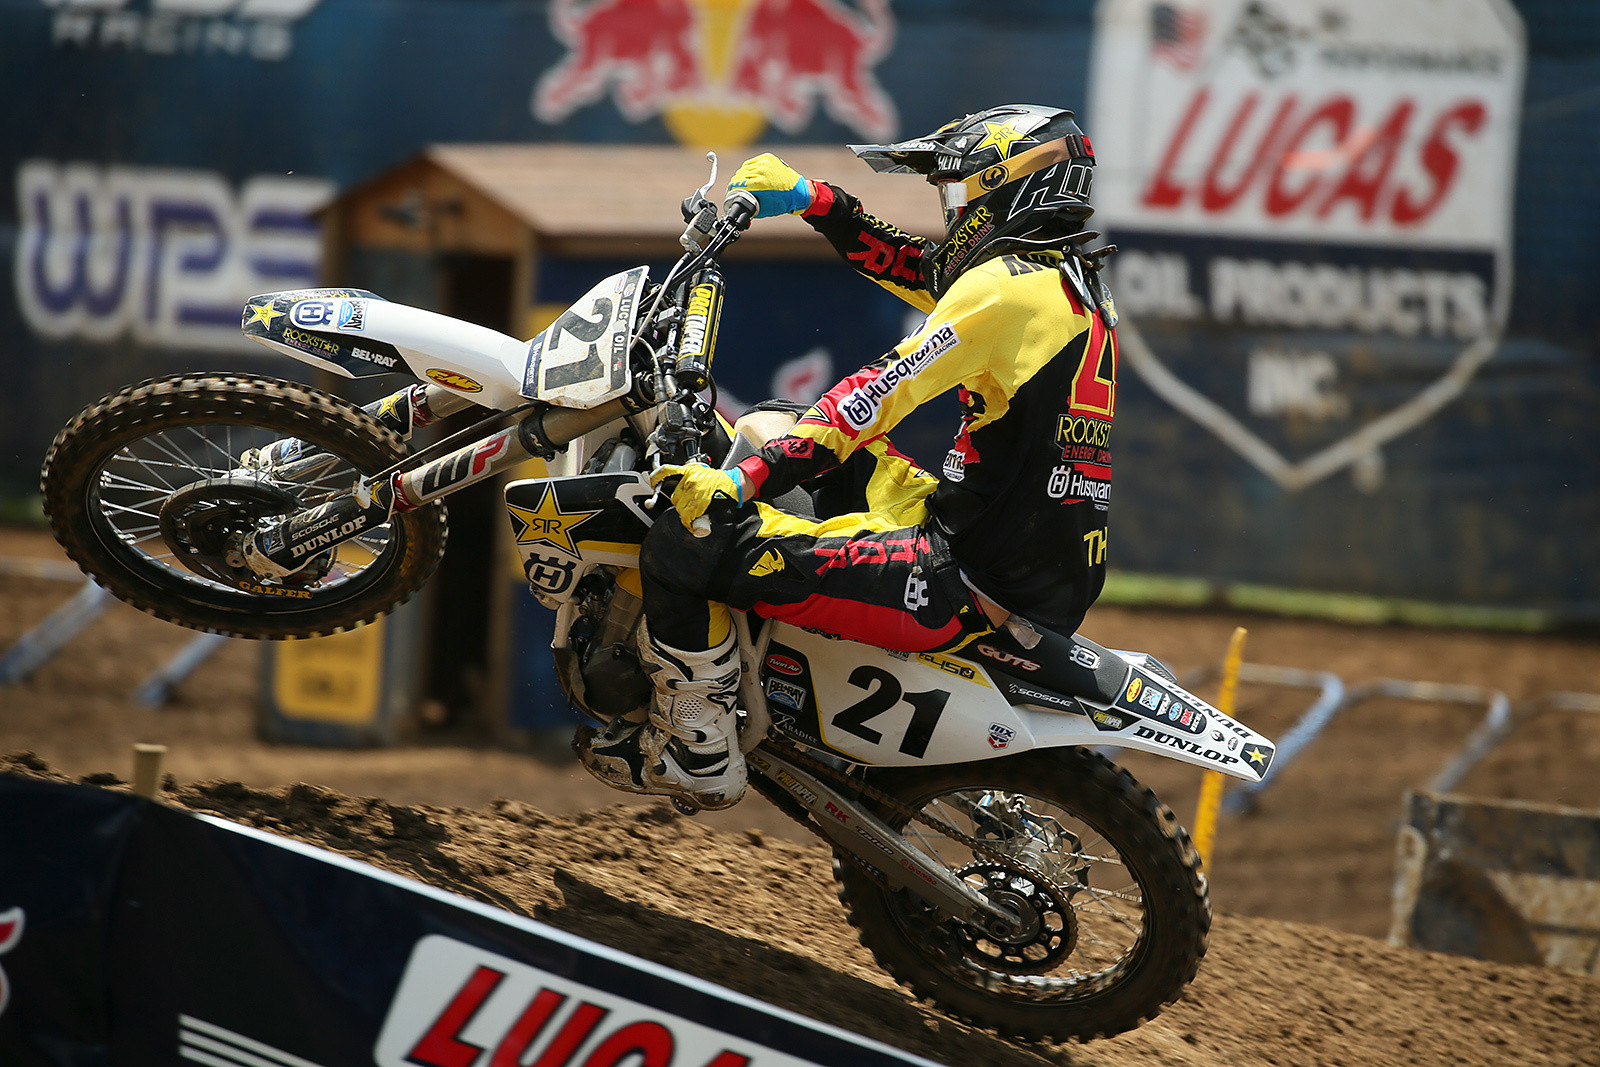 Jason Anderson quickly got by Justin Barcia after the start of the first moto, and sprinted to a win.